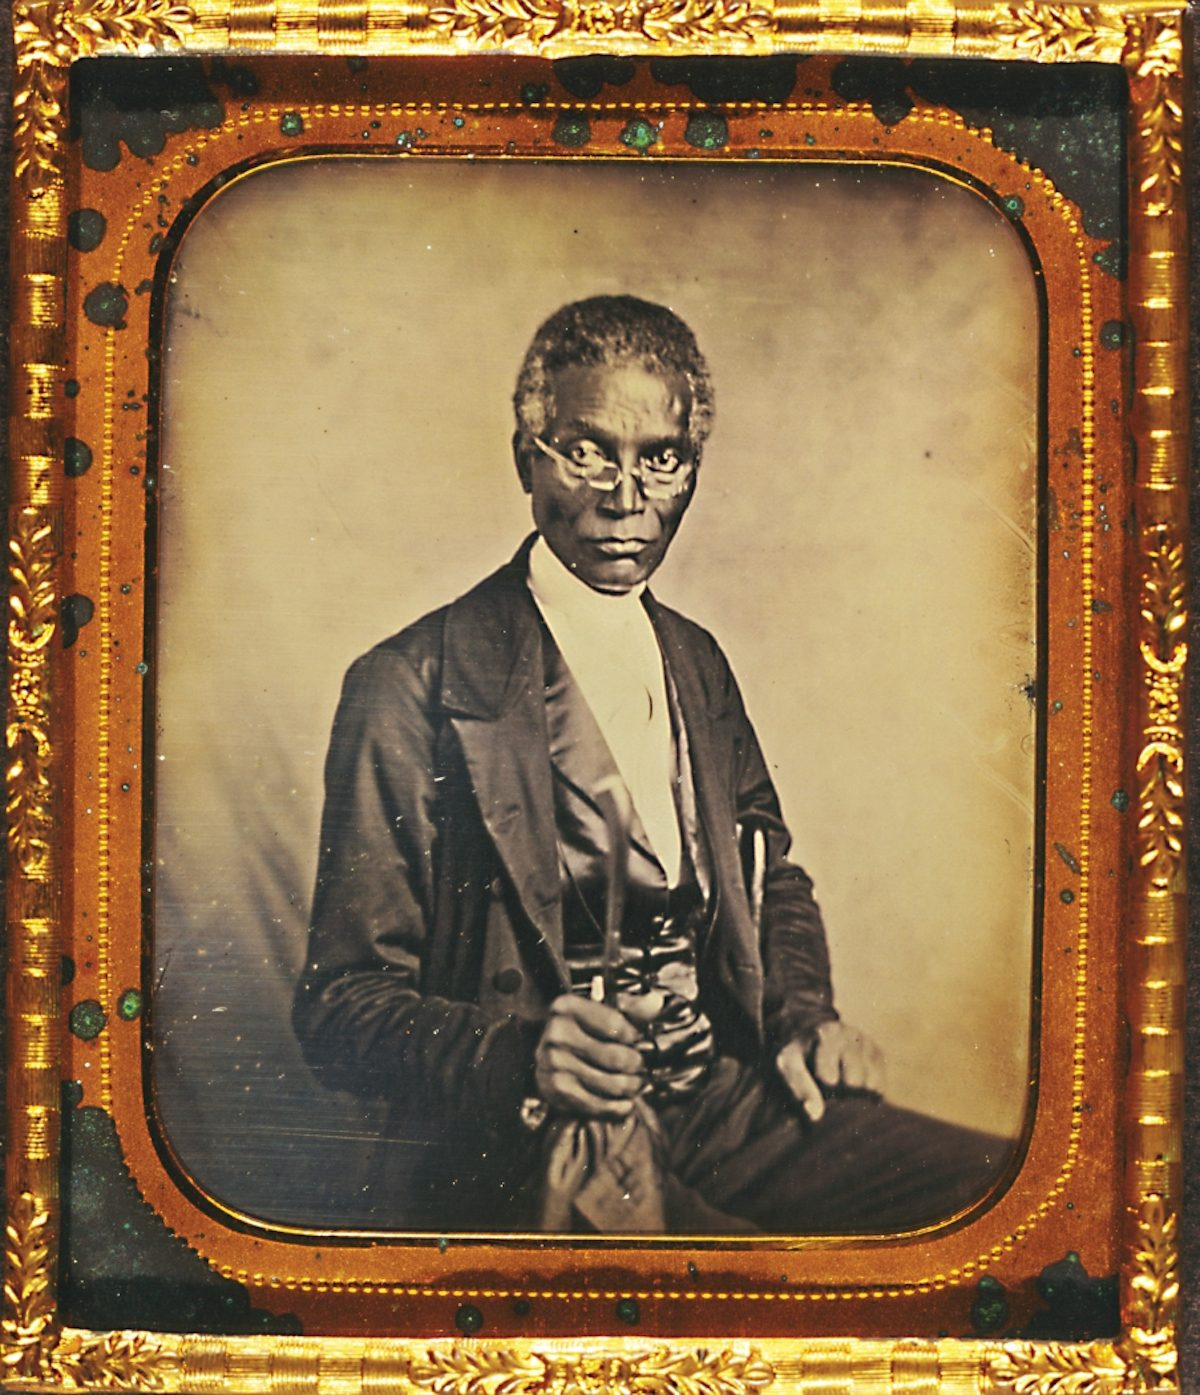 Philip Coker, clergyman and missionary of the Methodist Episcopal Church, by Augustus Washington